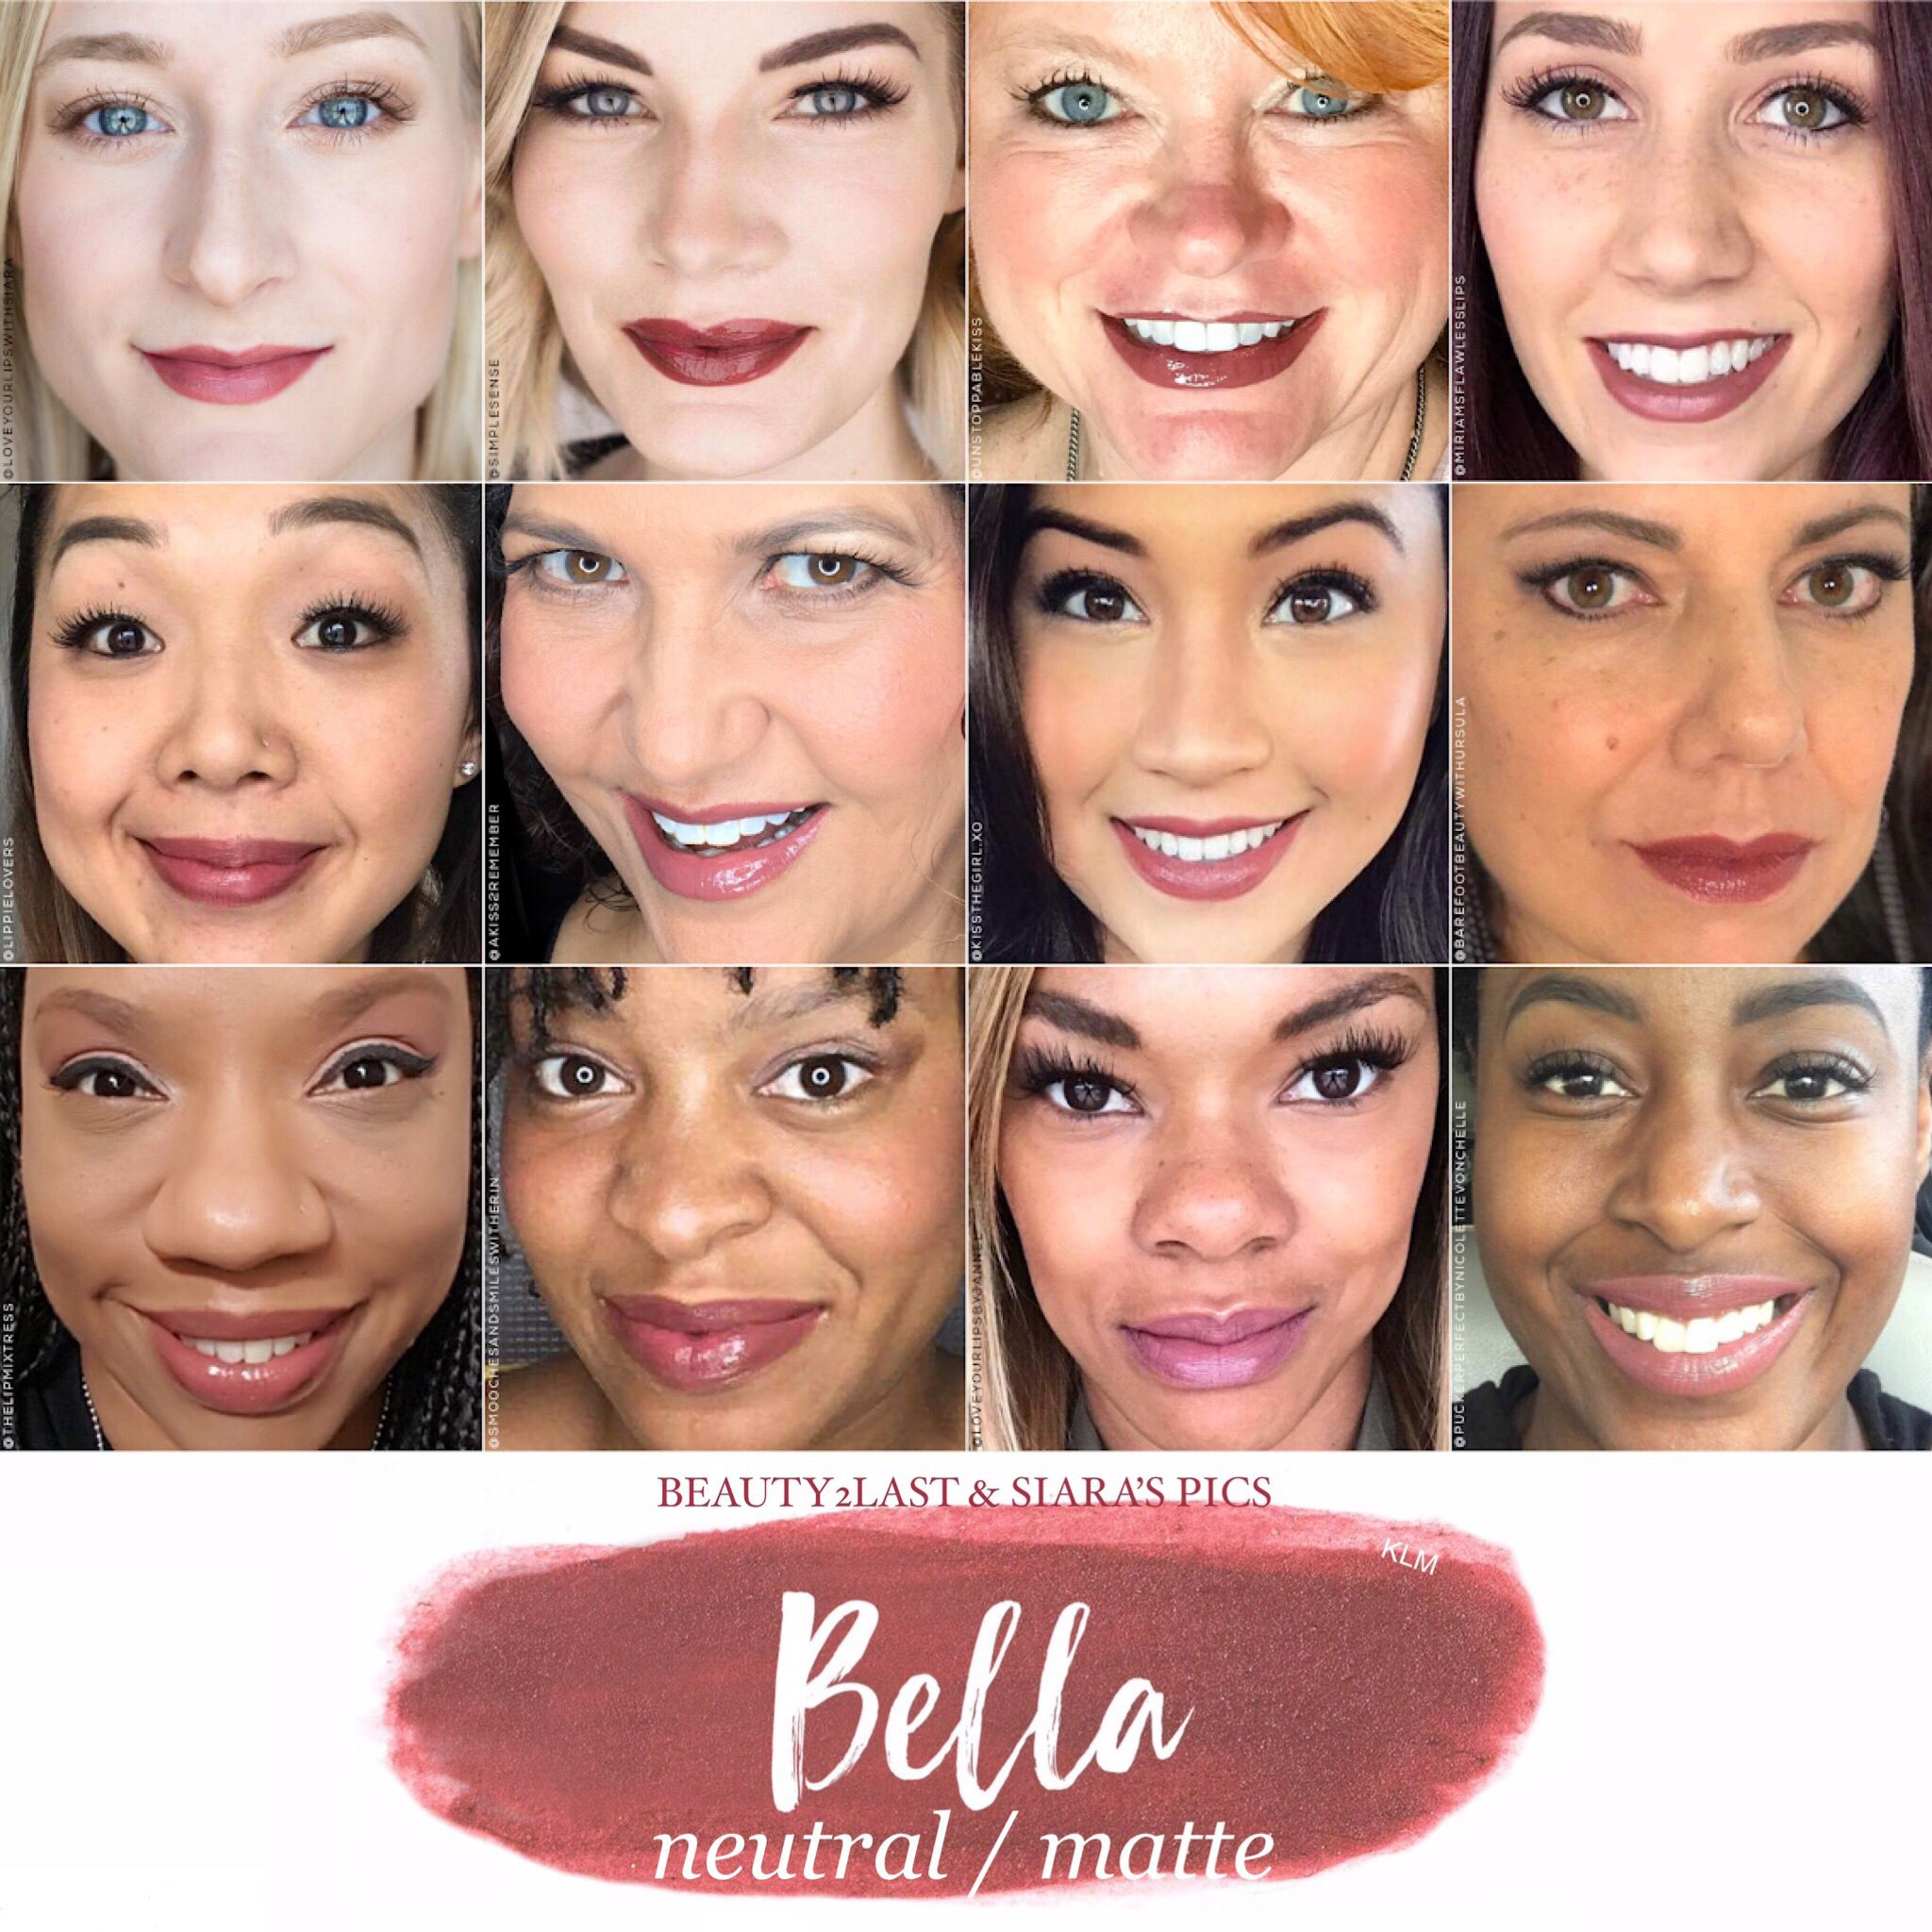 Bella LipSense selfies and swatch. Bella is a perfect neutral brown with pink undertones. LipSense is a long lasting lip color that when worn with in 3 layers and with our gloss is budge proof, smudge-proof, kiss-proof and will last 4-18 hours